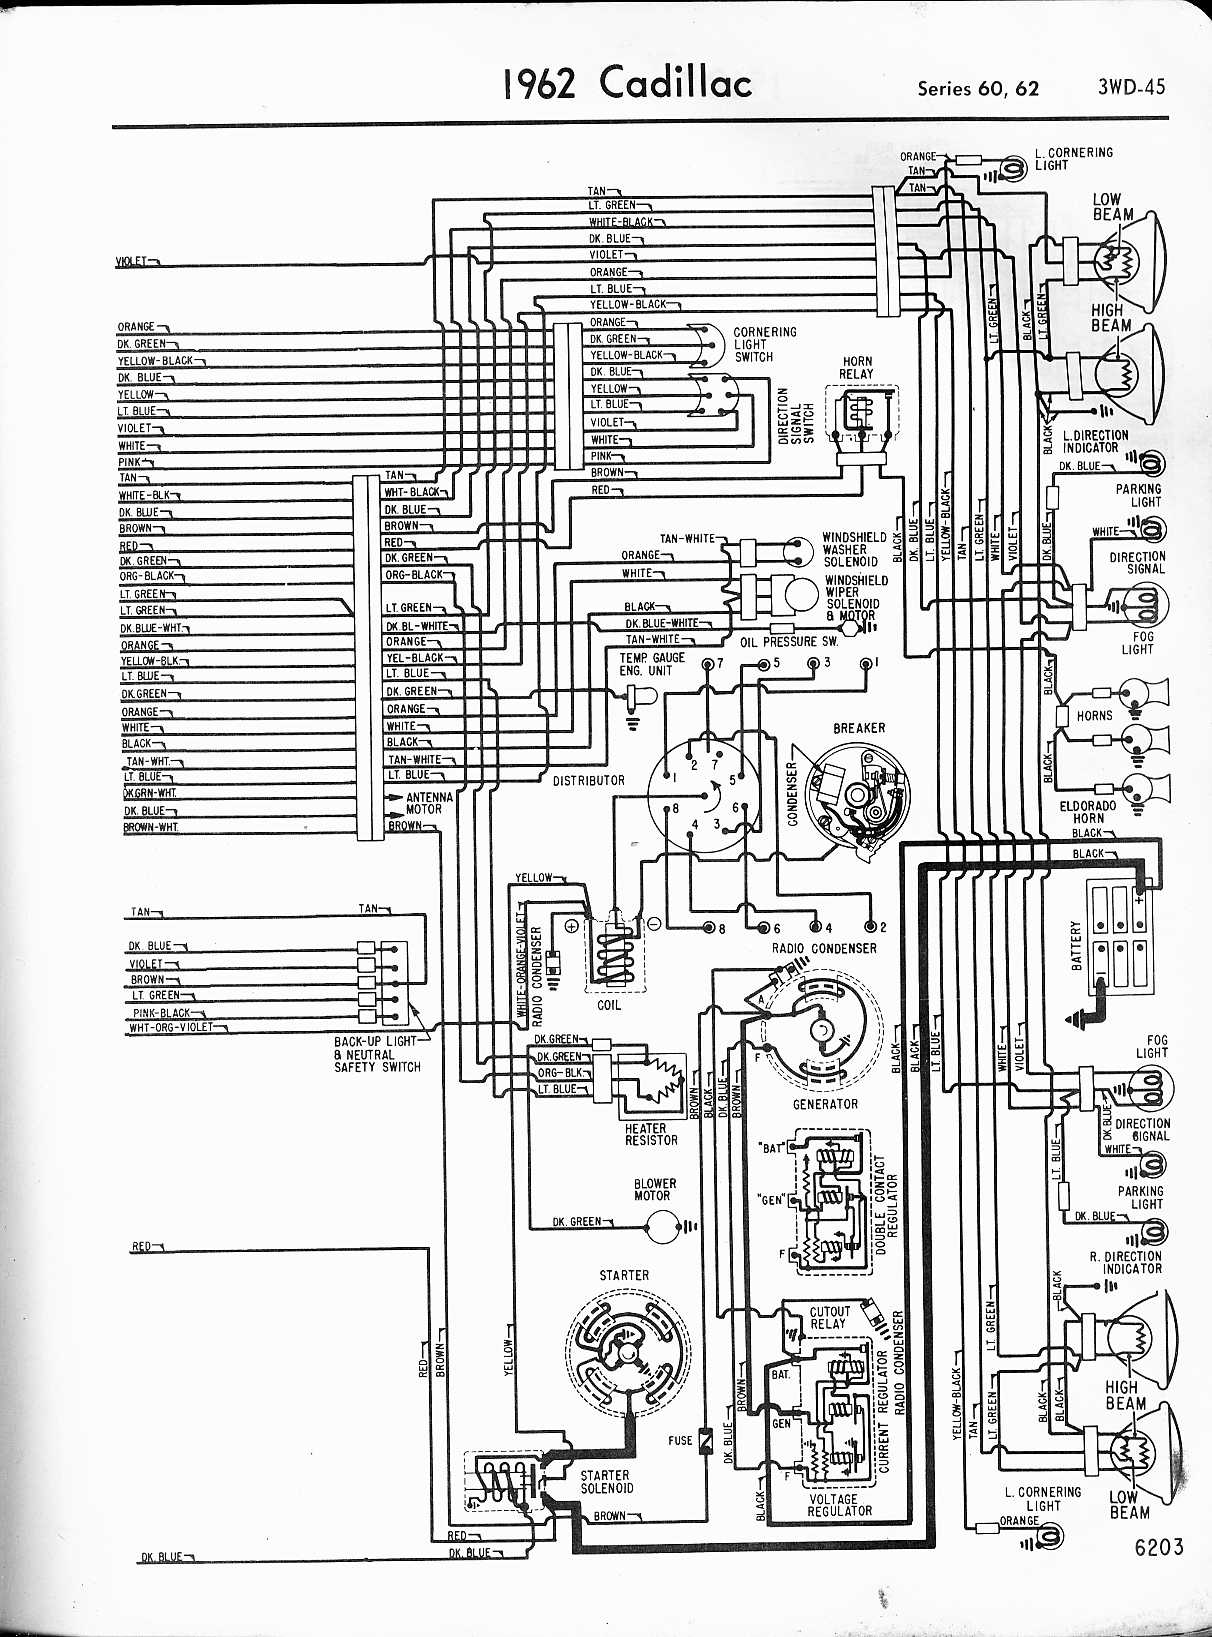 Miraculous Trunk Locks Wiring Diagram Of 1957 58 Cadillac Eldorado Brougham Wiring Cloud Nuvitbieswglorg